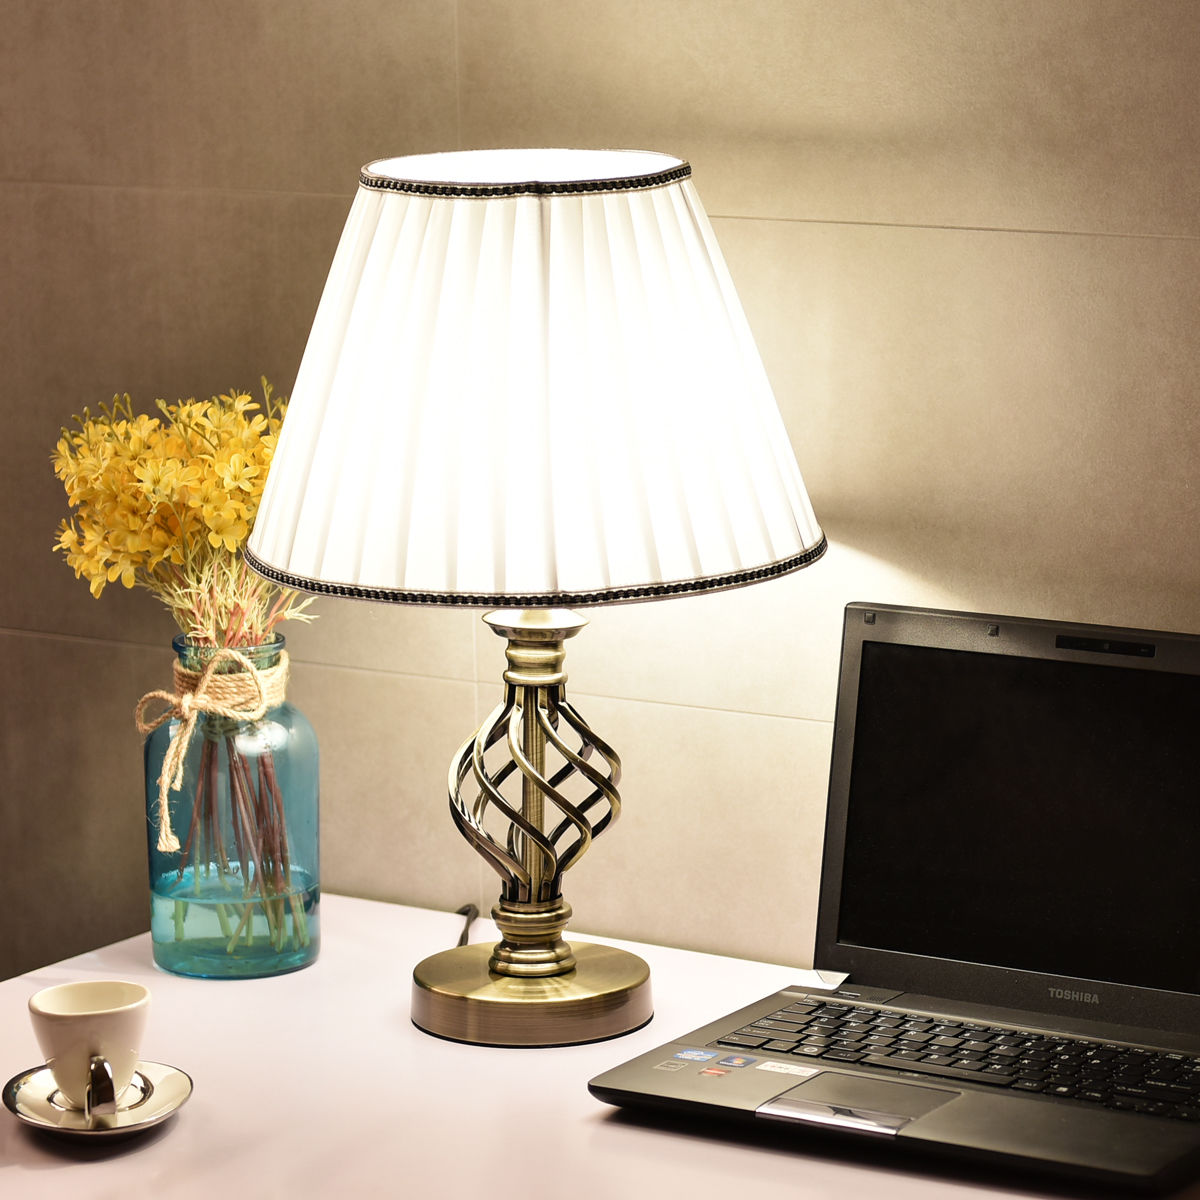 Costway 13'' Antique Brass Bedside Table Lamp w  LED Bulb Office Light White by Costway